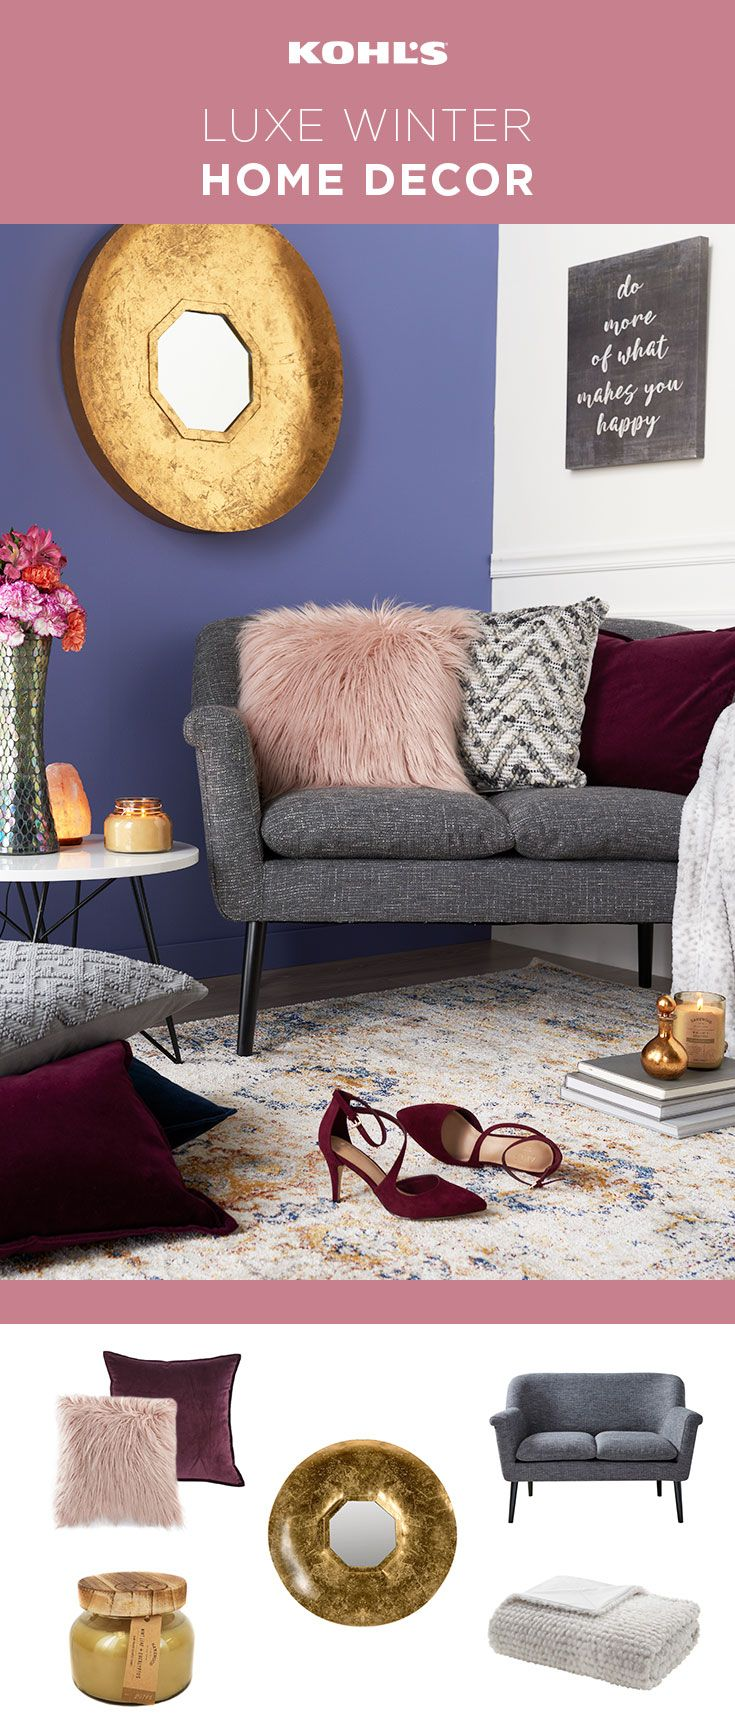 It's the season of spending more time indoors, so why not make your space a place you love? A few simple additions, like textured pillows, an interesting mirror and cozy decor, can transform your home to a welcoming winter abode. Shop the home decor, including LC Lauren Conrad faux fur pillow, at Kohl's. #homedecorideas